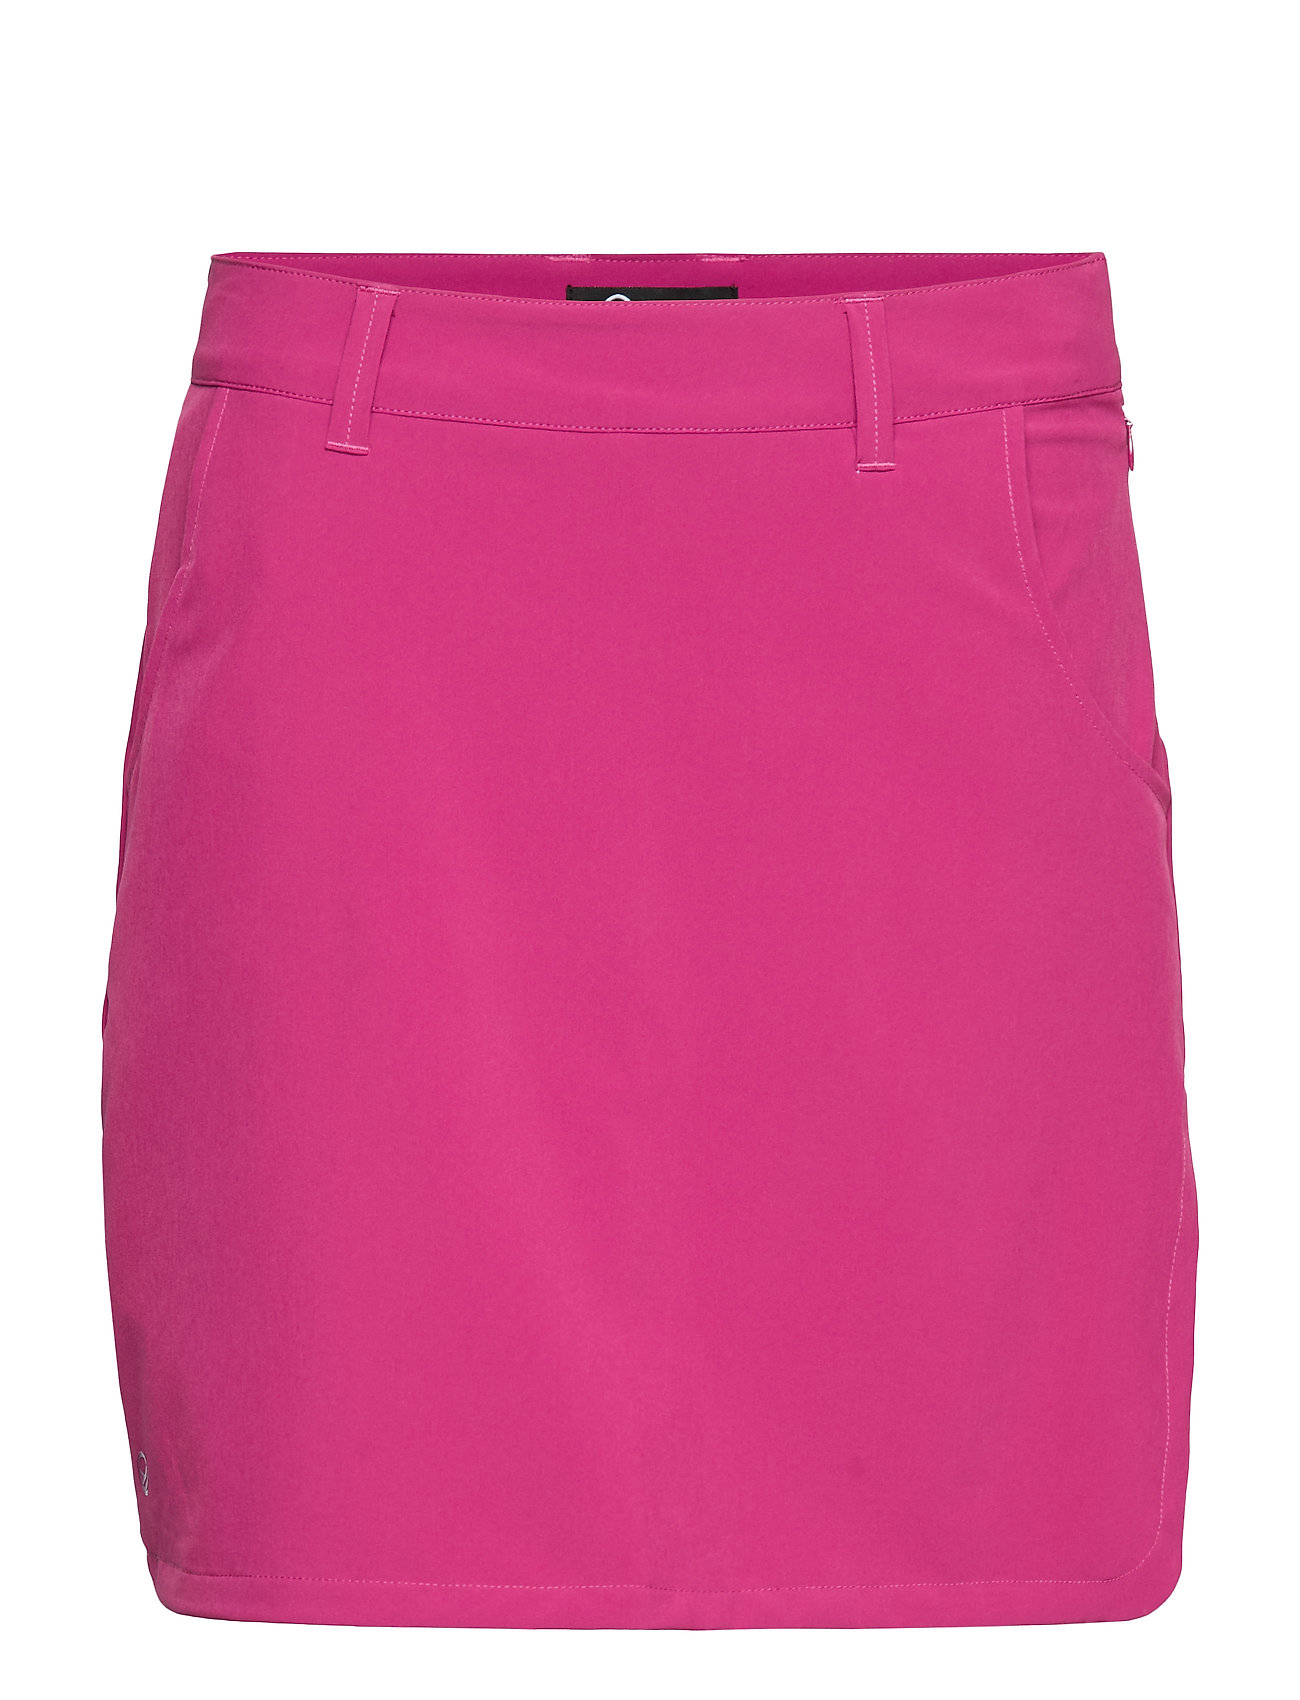 Halti Ilo Women's Skort - WILD ASTER PURPLE